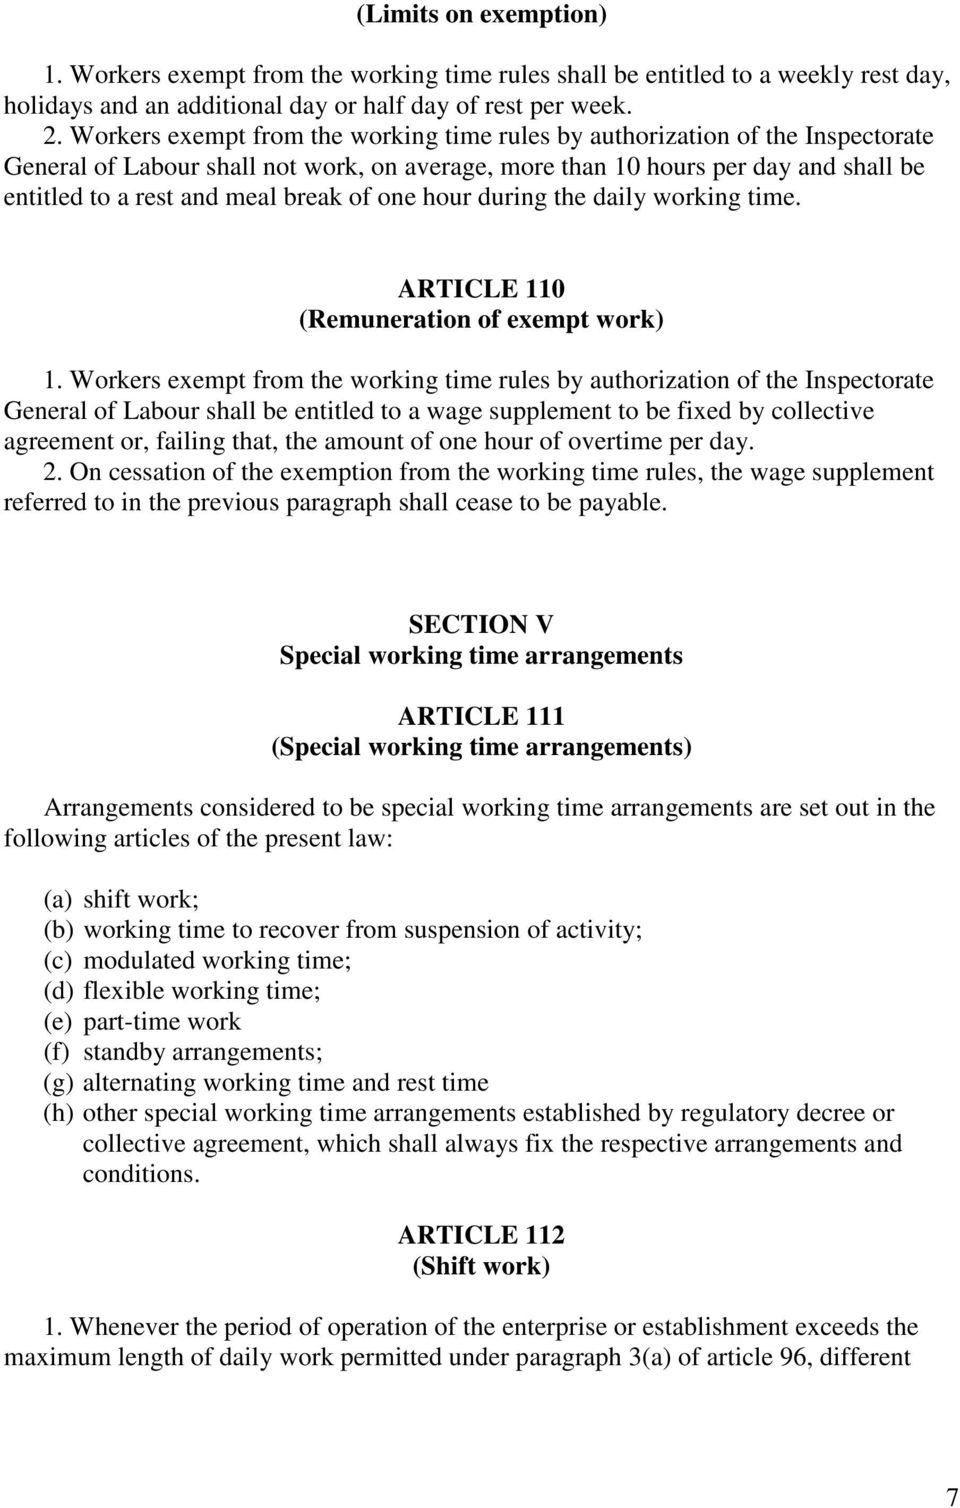 of one hour during the daily working time. ARTICLE 110 (Remuneration of exempt work) 1.